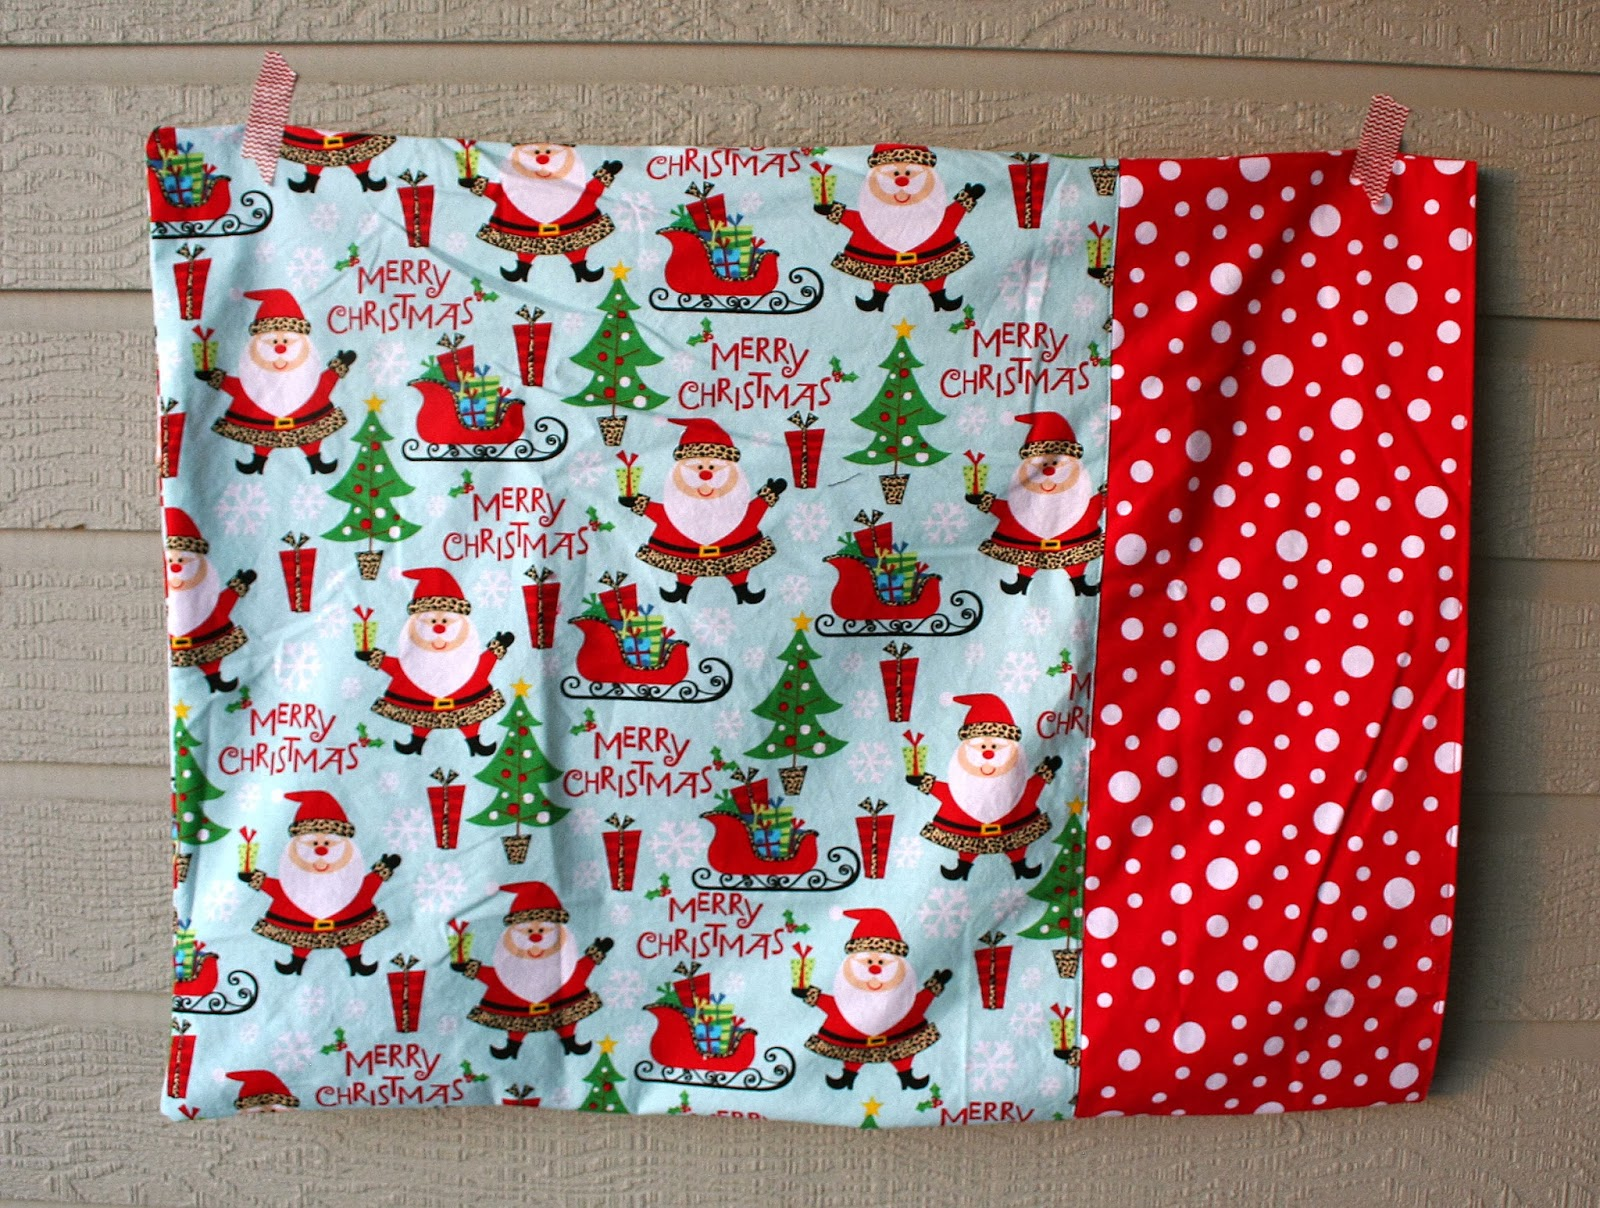 Simplyprice a new tradition christmas pillowcases - Bricolage de noel pour adulte ...